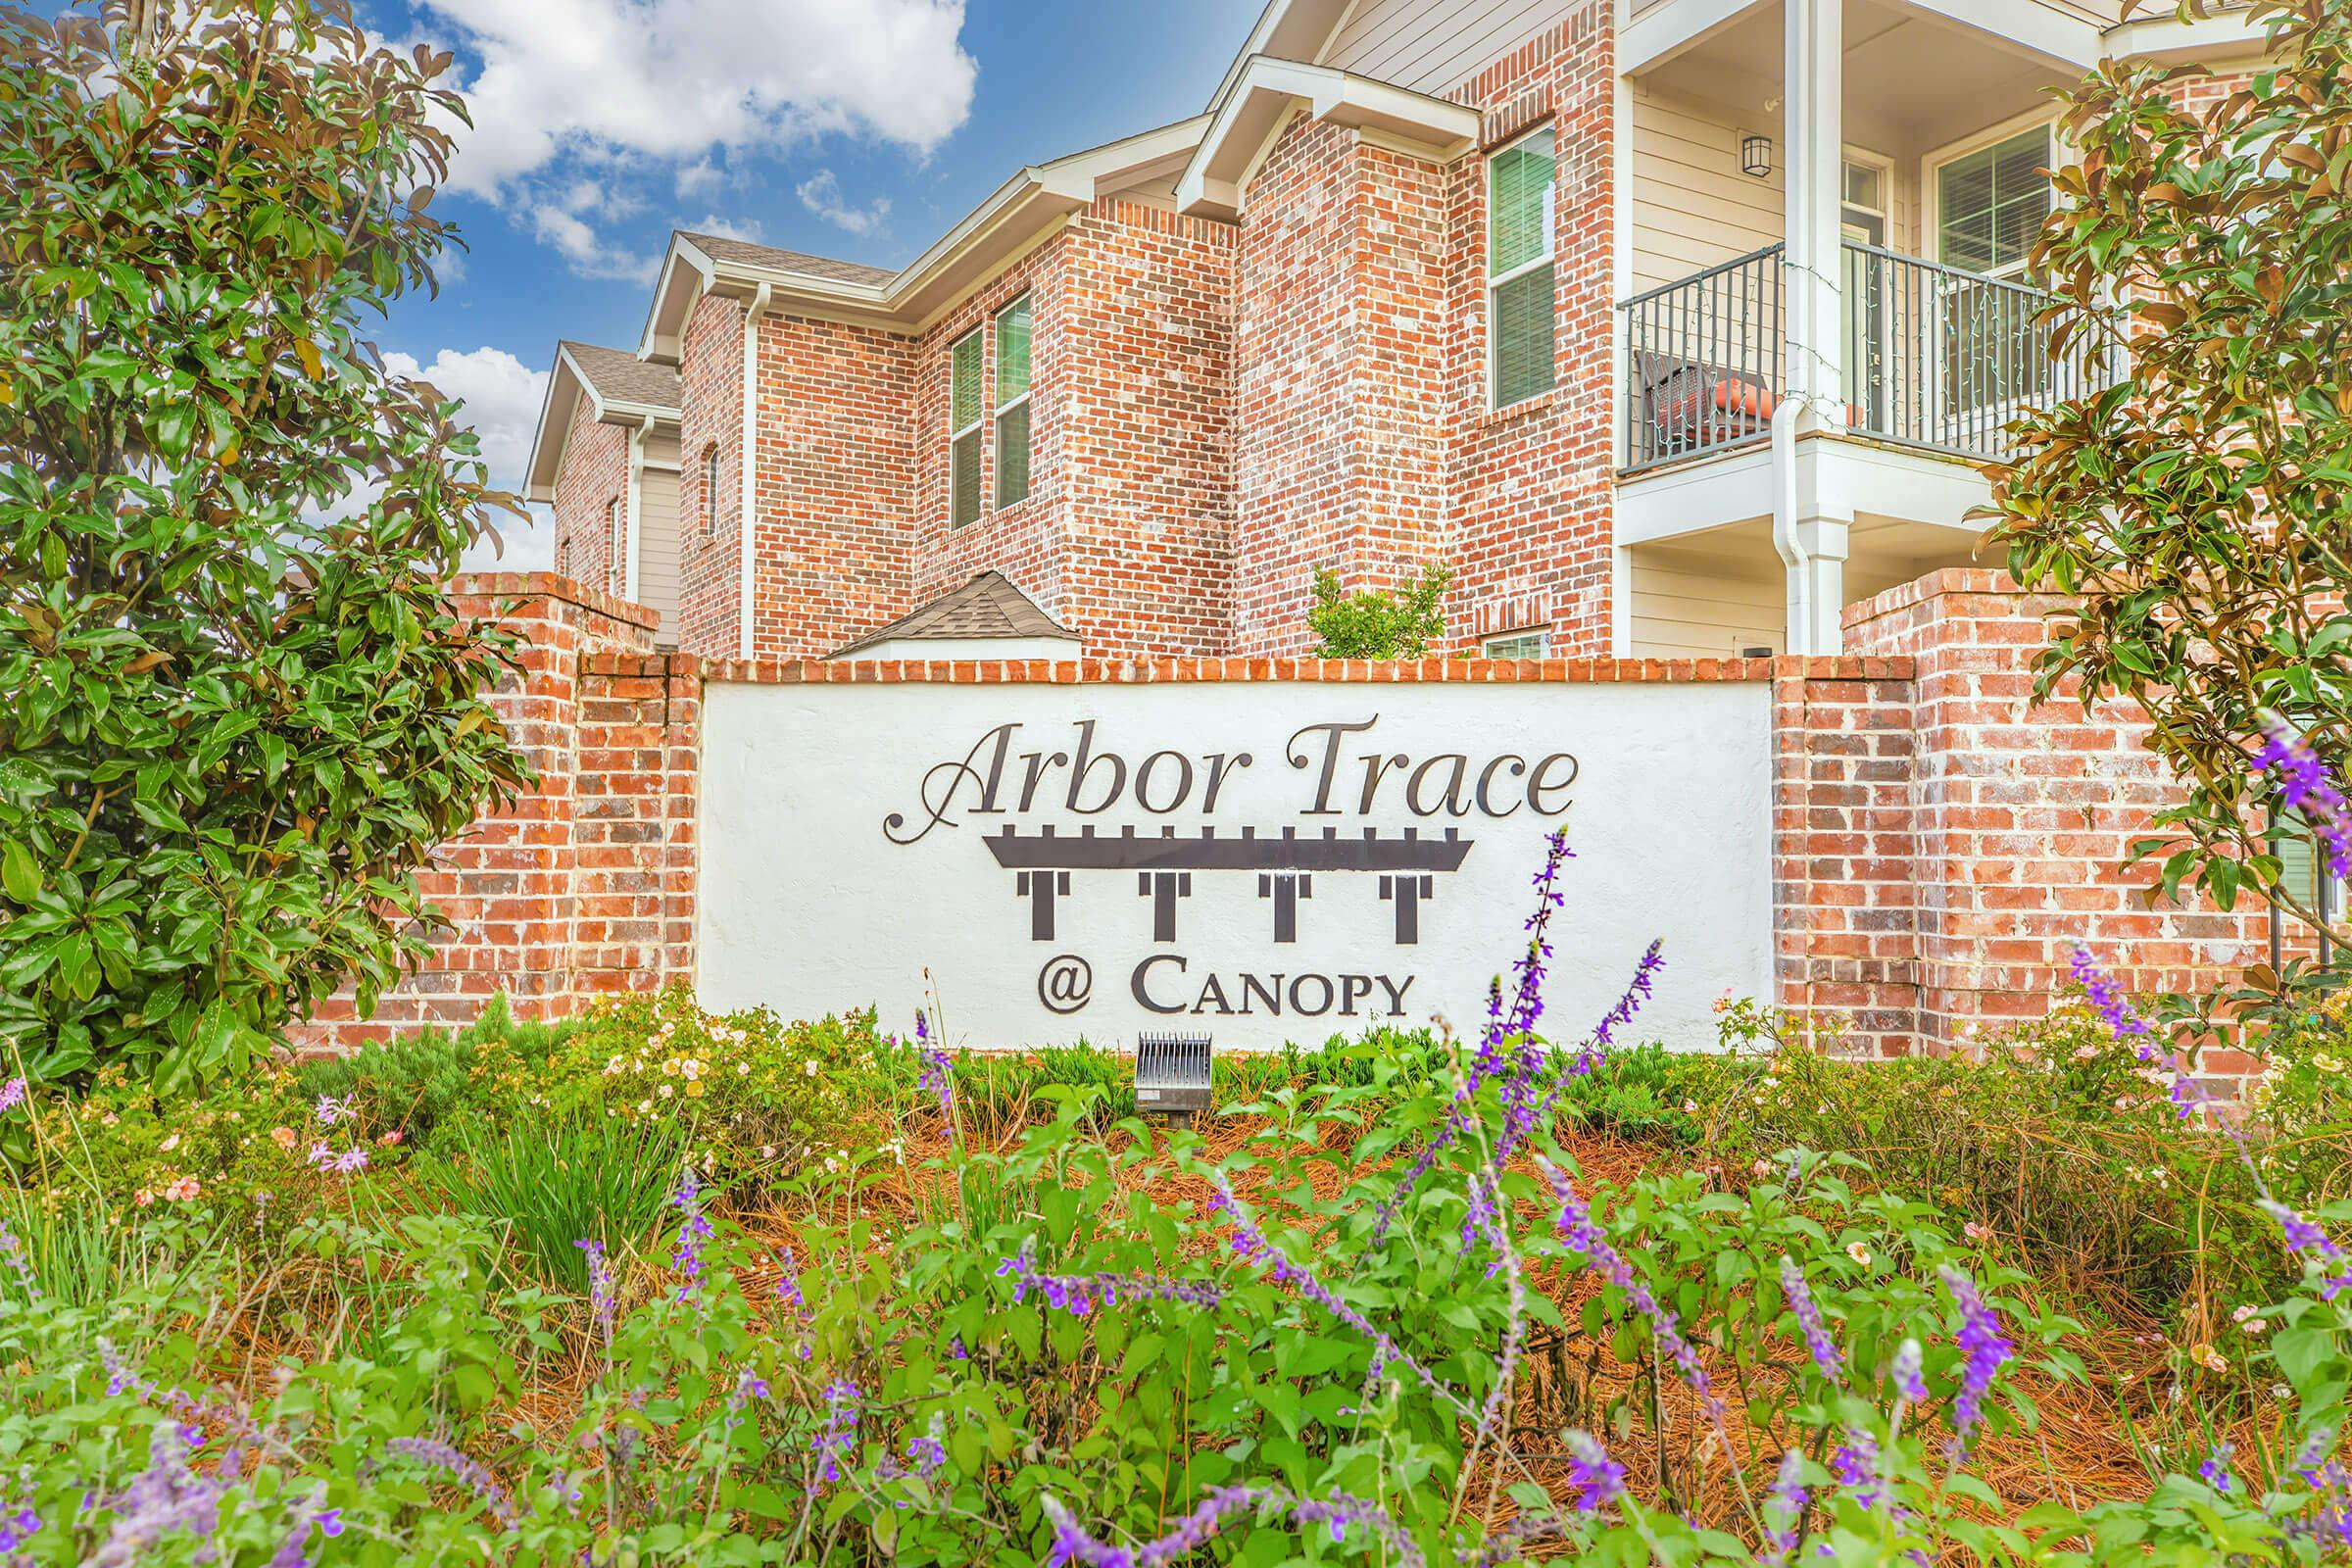 THERE'S NO PLACE LIKE ARBOR TRACE AT CANOPY TALLAHASSEE